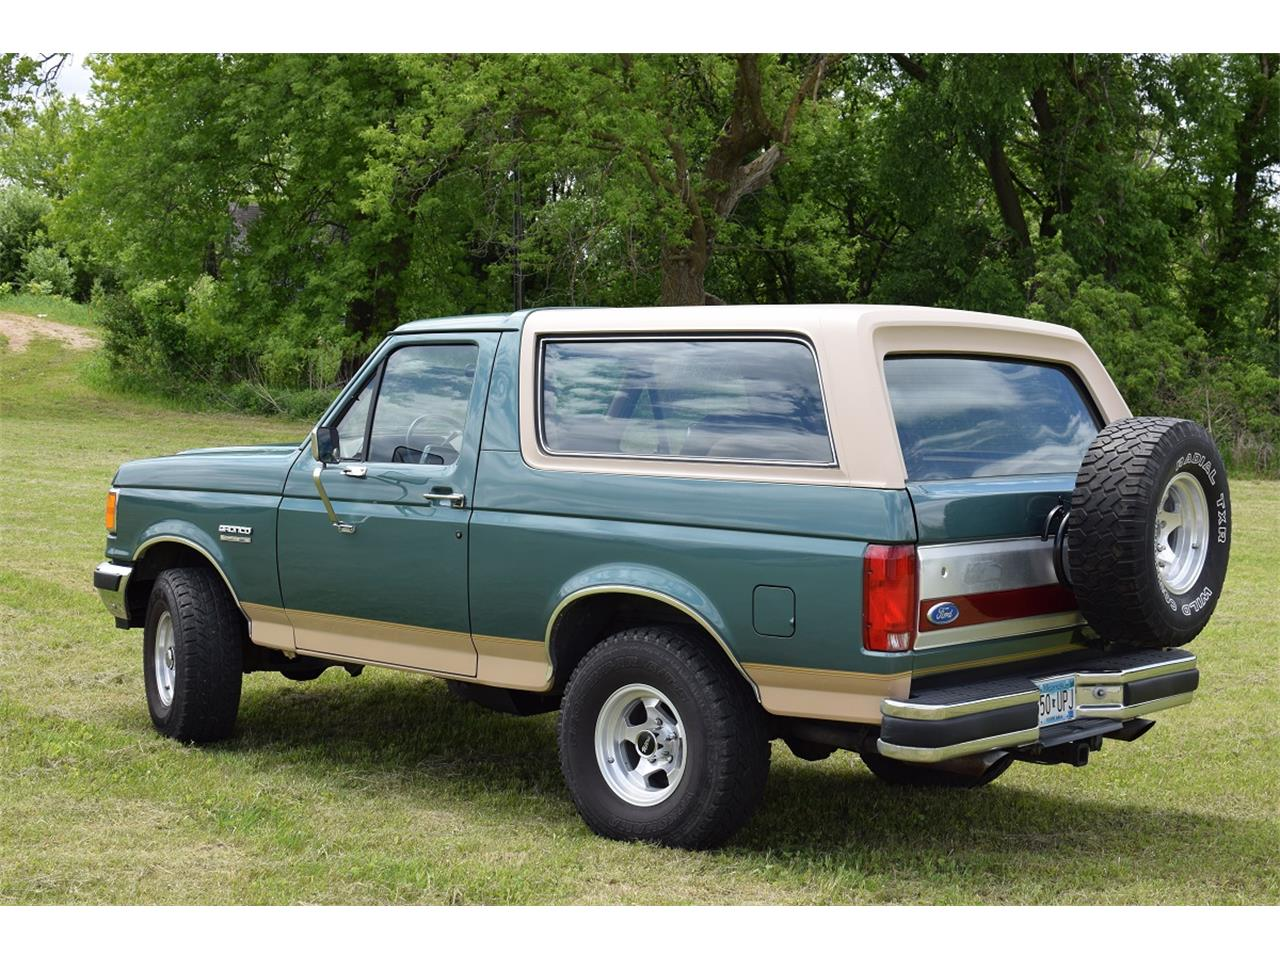 Large Picture of '98 Bronco - $22,500.00 - L5VG